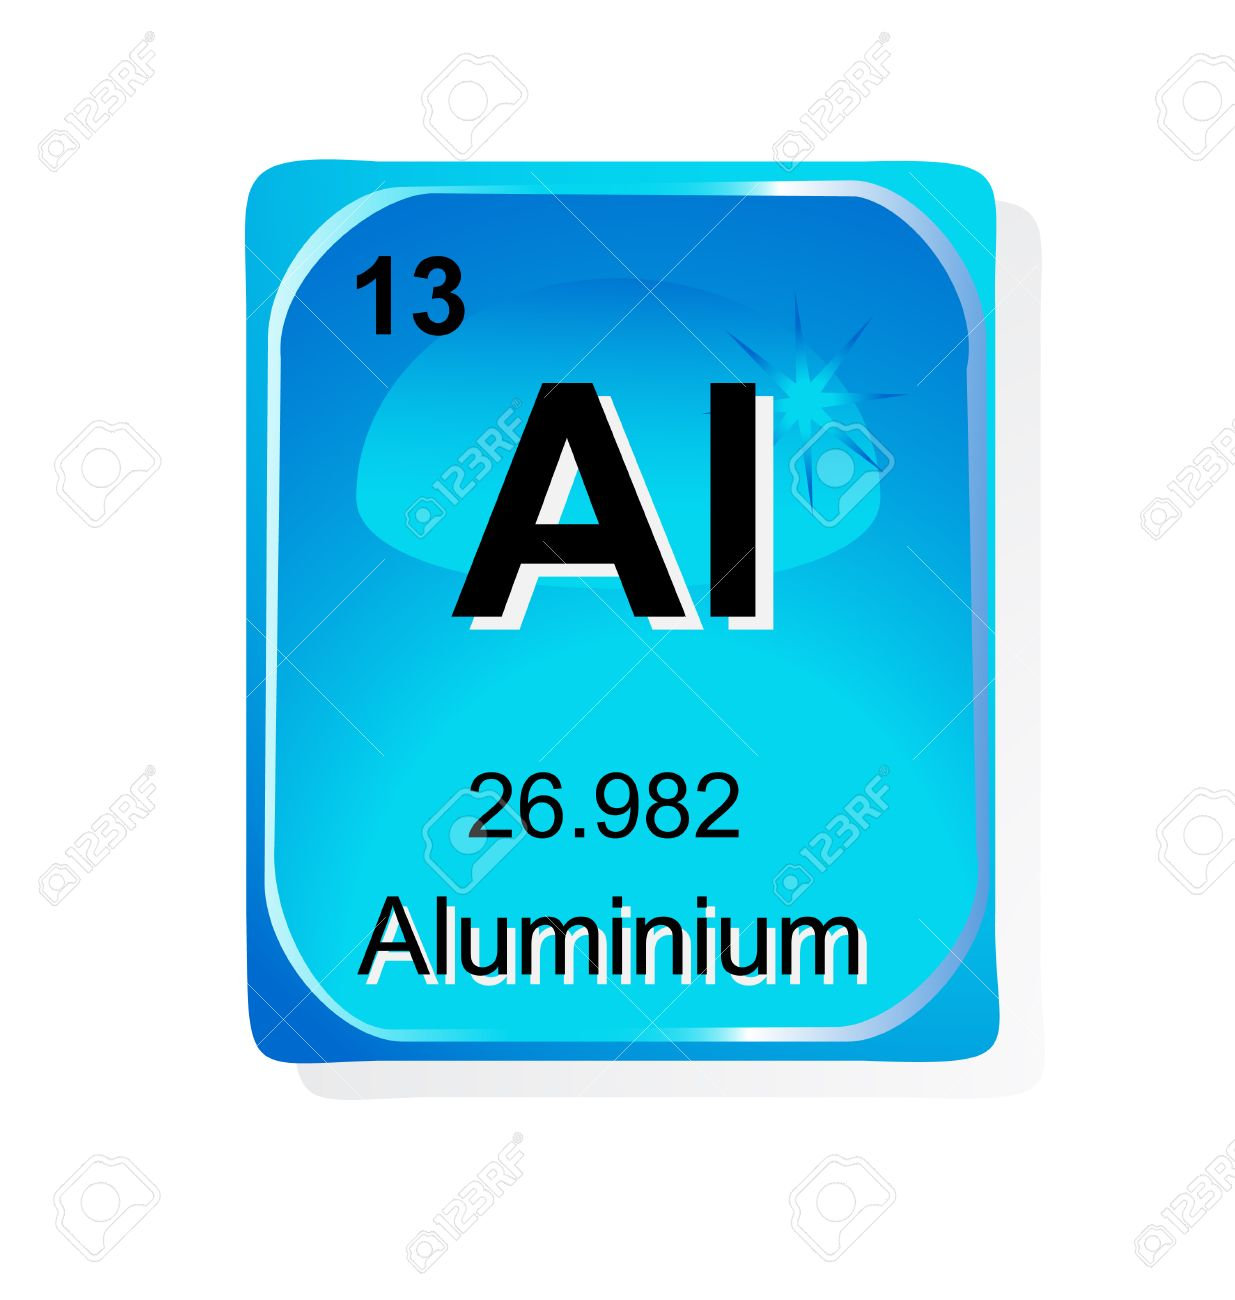 Hydrogen chemical element with atomic omnigraffle cisco stencils aluminium chemical element with atomic number symbol and weight 24509726 aluminium chemical element with atomic number gamestrikefo Choice Image